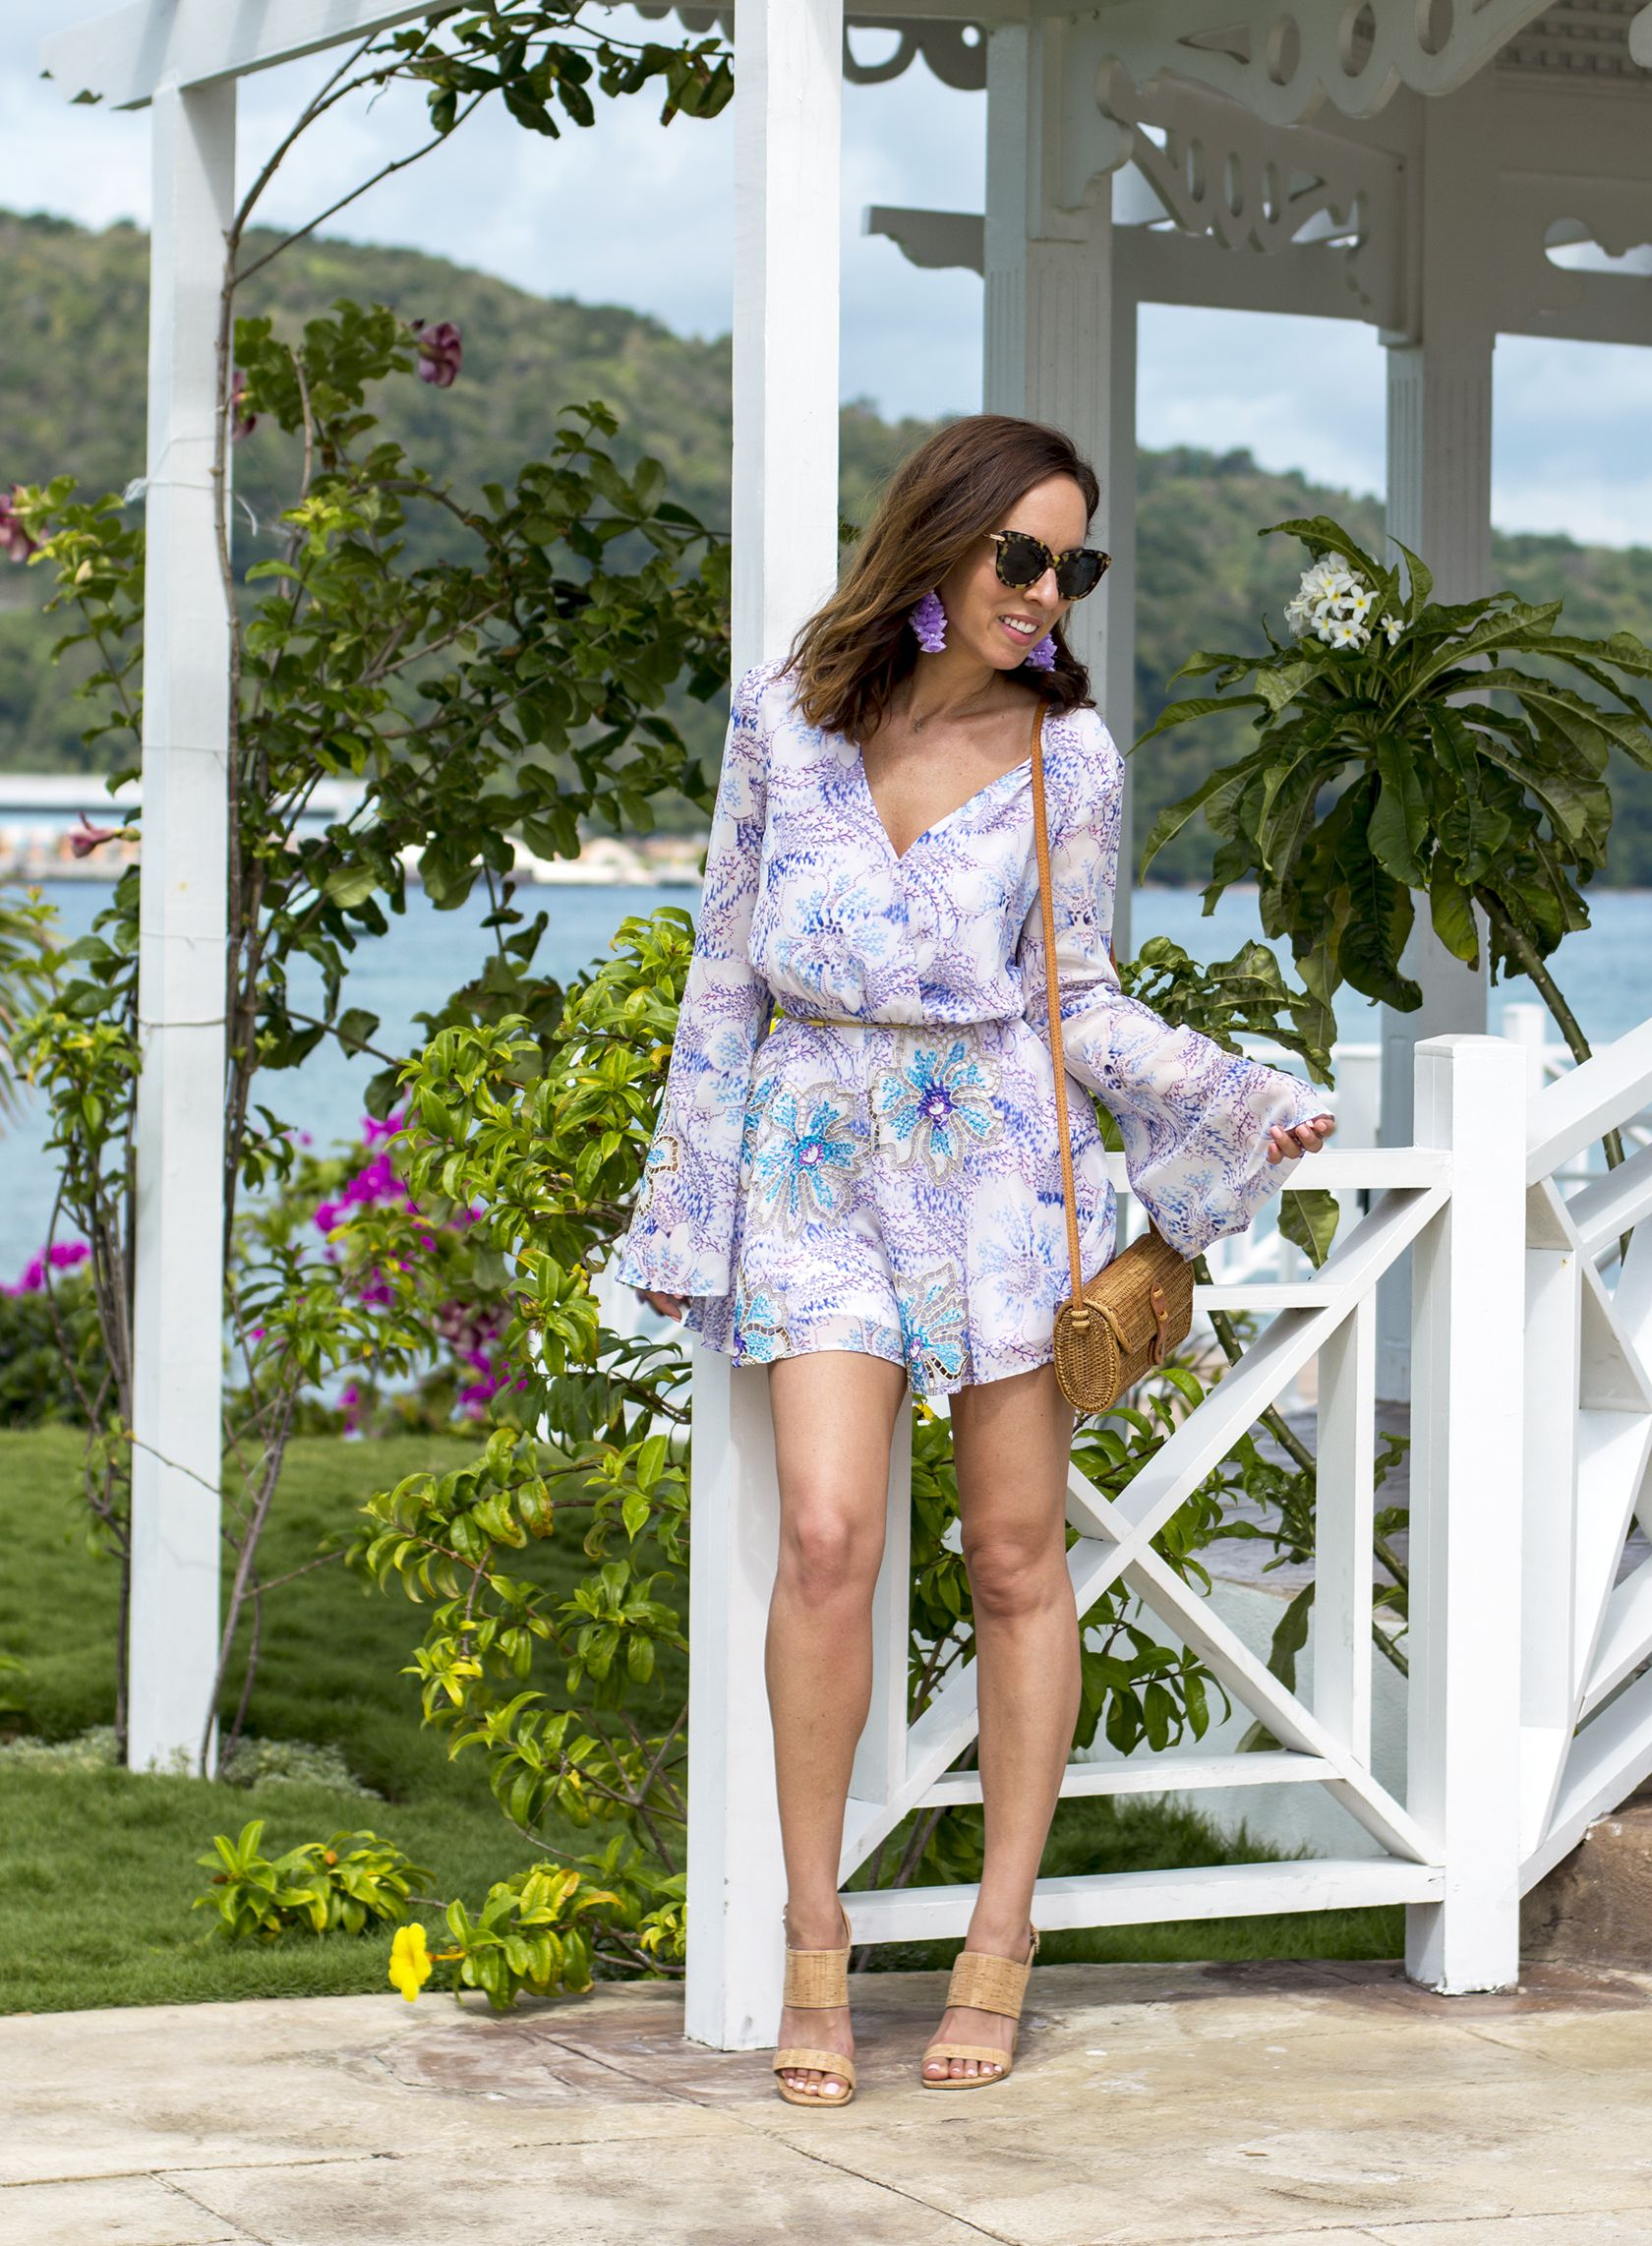 Sydne Style Reviews Moon Palace Jamaica For All Inclusive Hotels In Ocho Rios Rompers Florals Jama Fashion Los Angeles Fashion Blogger Spring Summer Fashion